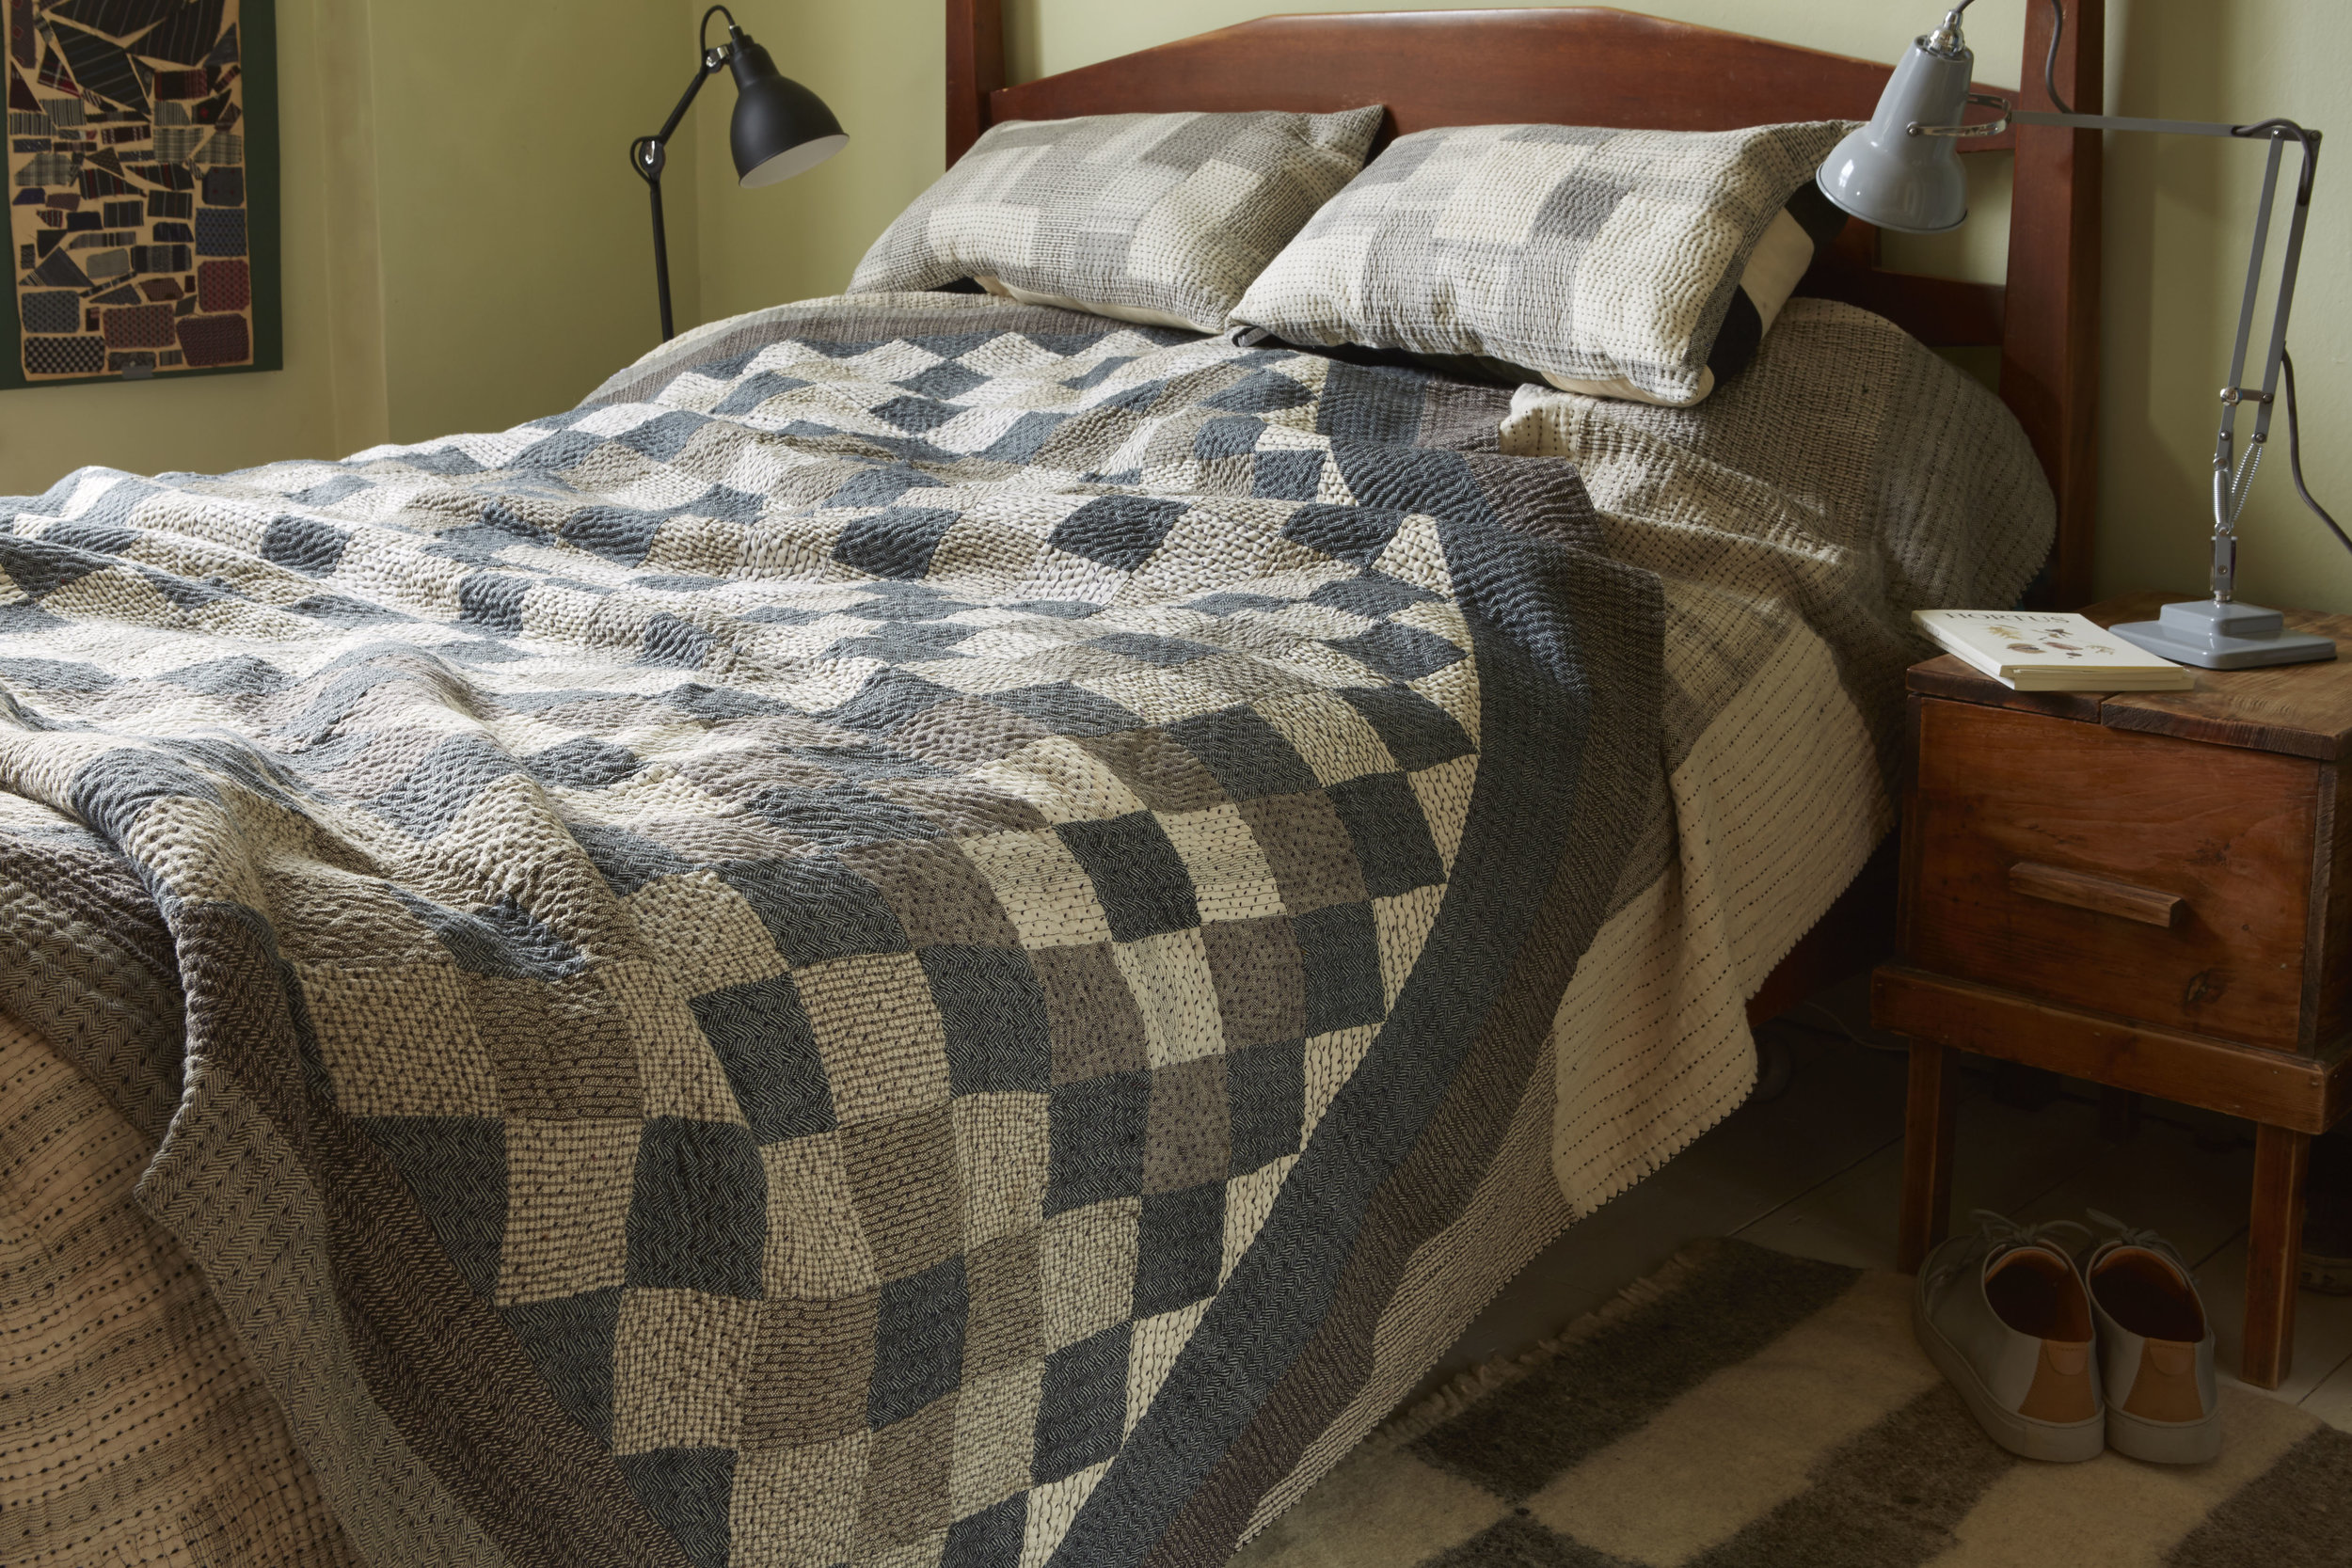 A Stitch by Stitch patchwork Khamir Cubes Quilt in organic kala cotton layered with a Chindi Quilt in one of the bedrooms.